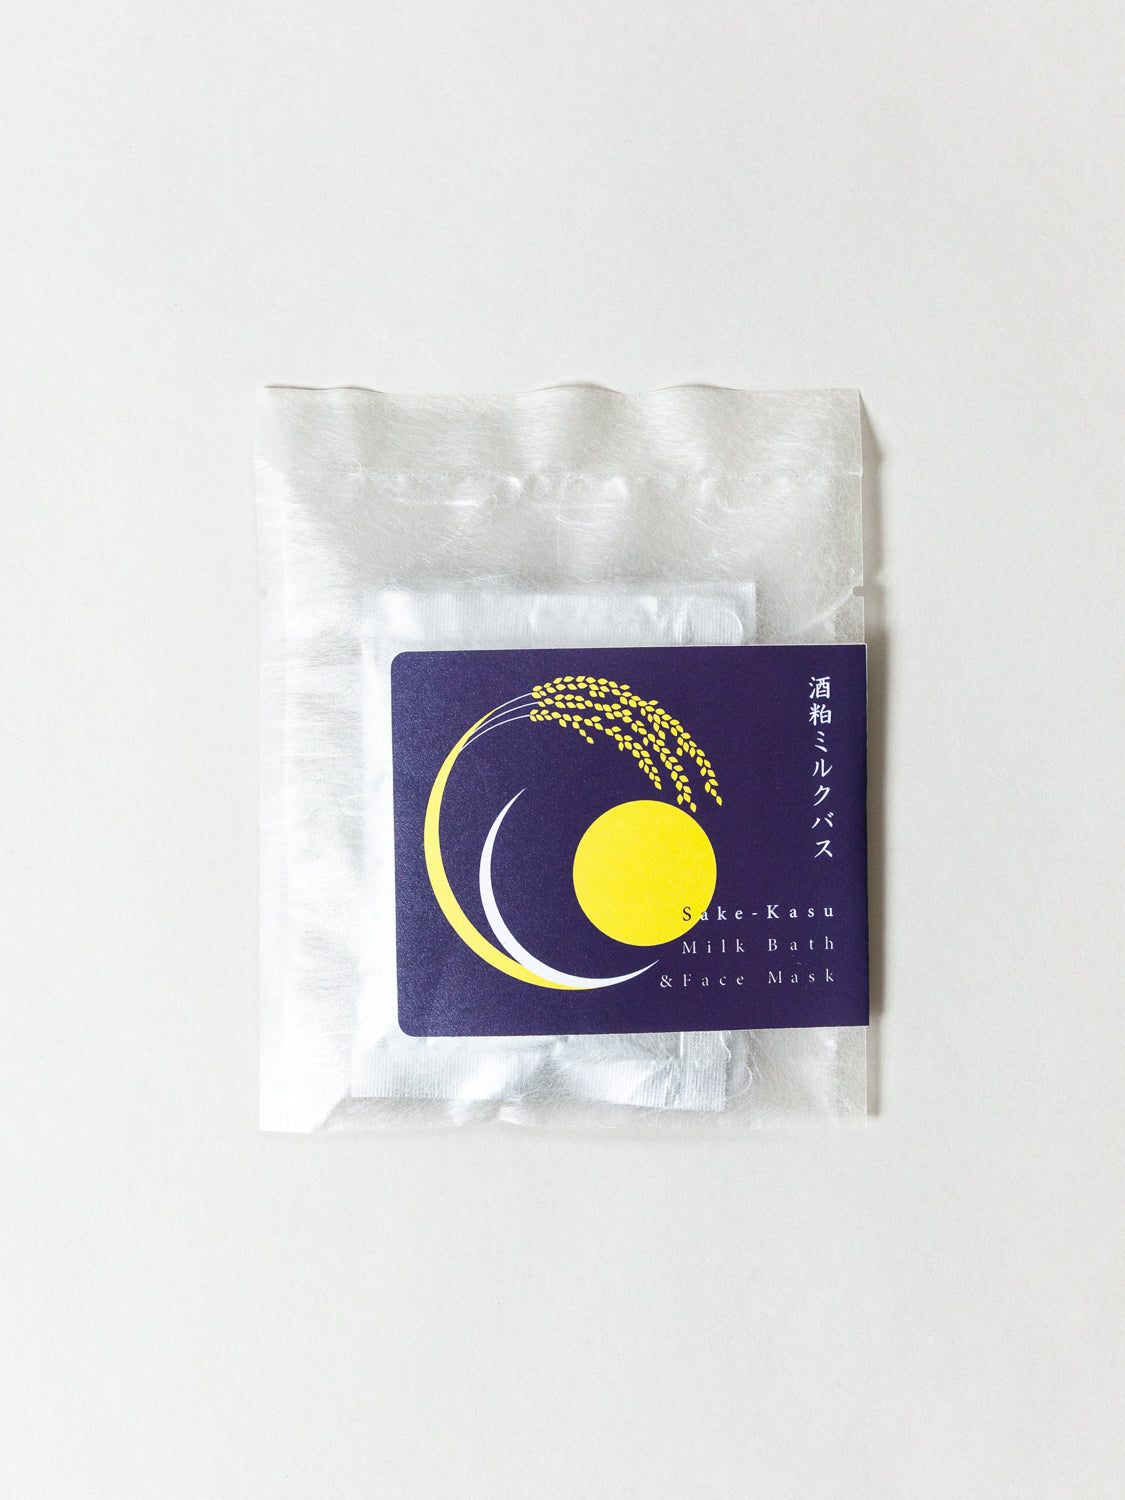 SAKE-KASU Milk Bath + Face Mask